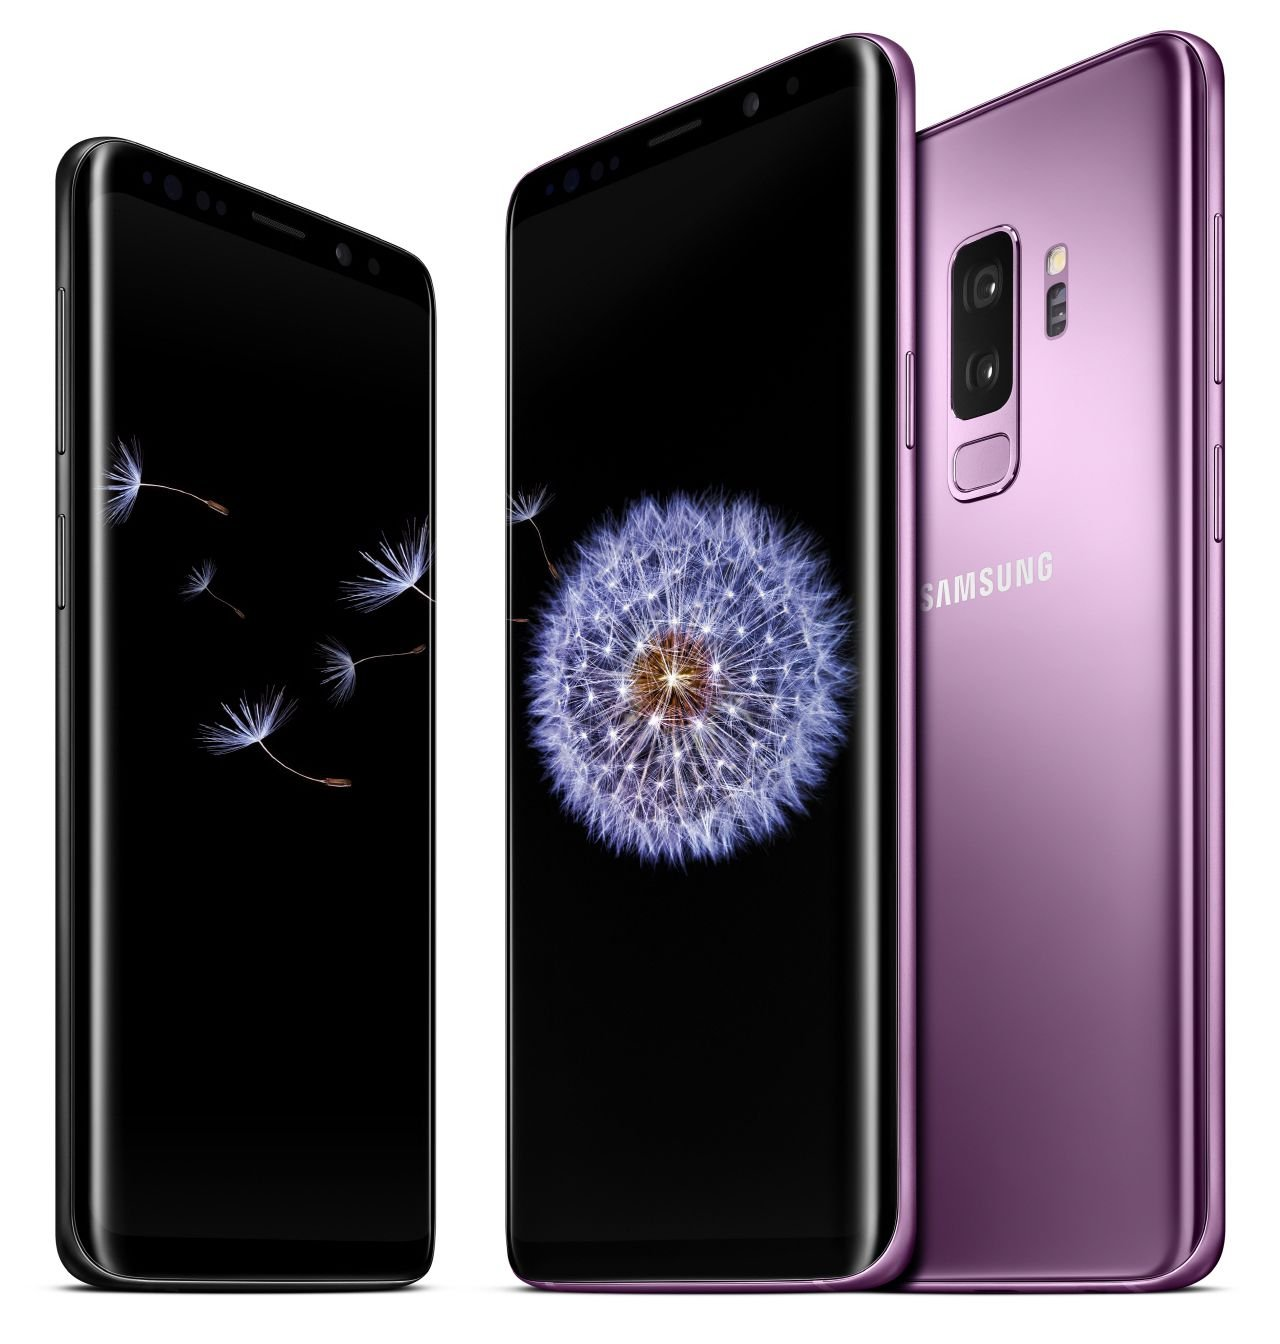 Samsung Galaxy S9 and Galaxy S9+ Model Numbers / Variants [Complete